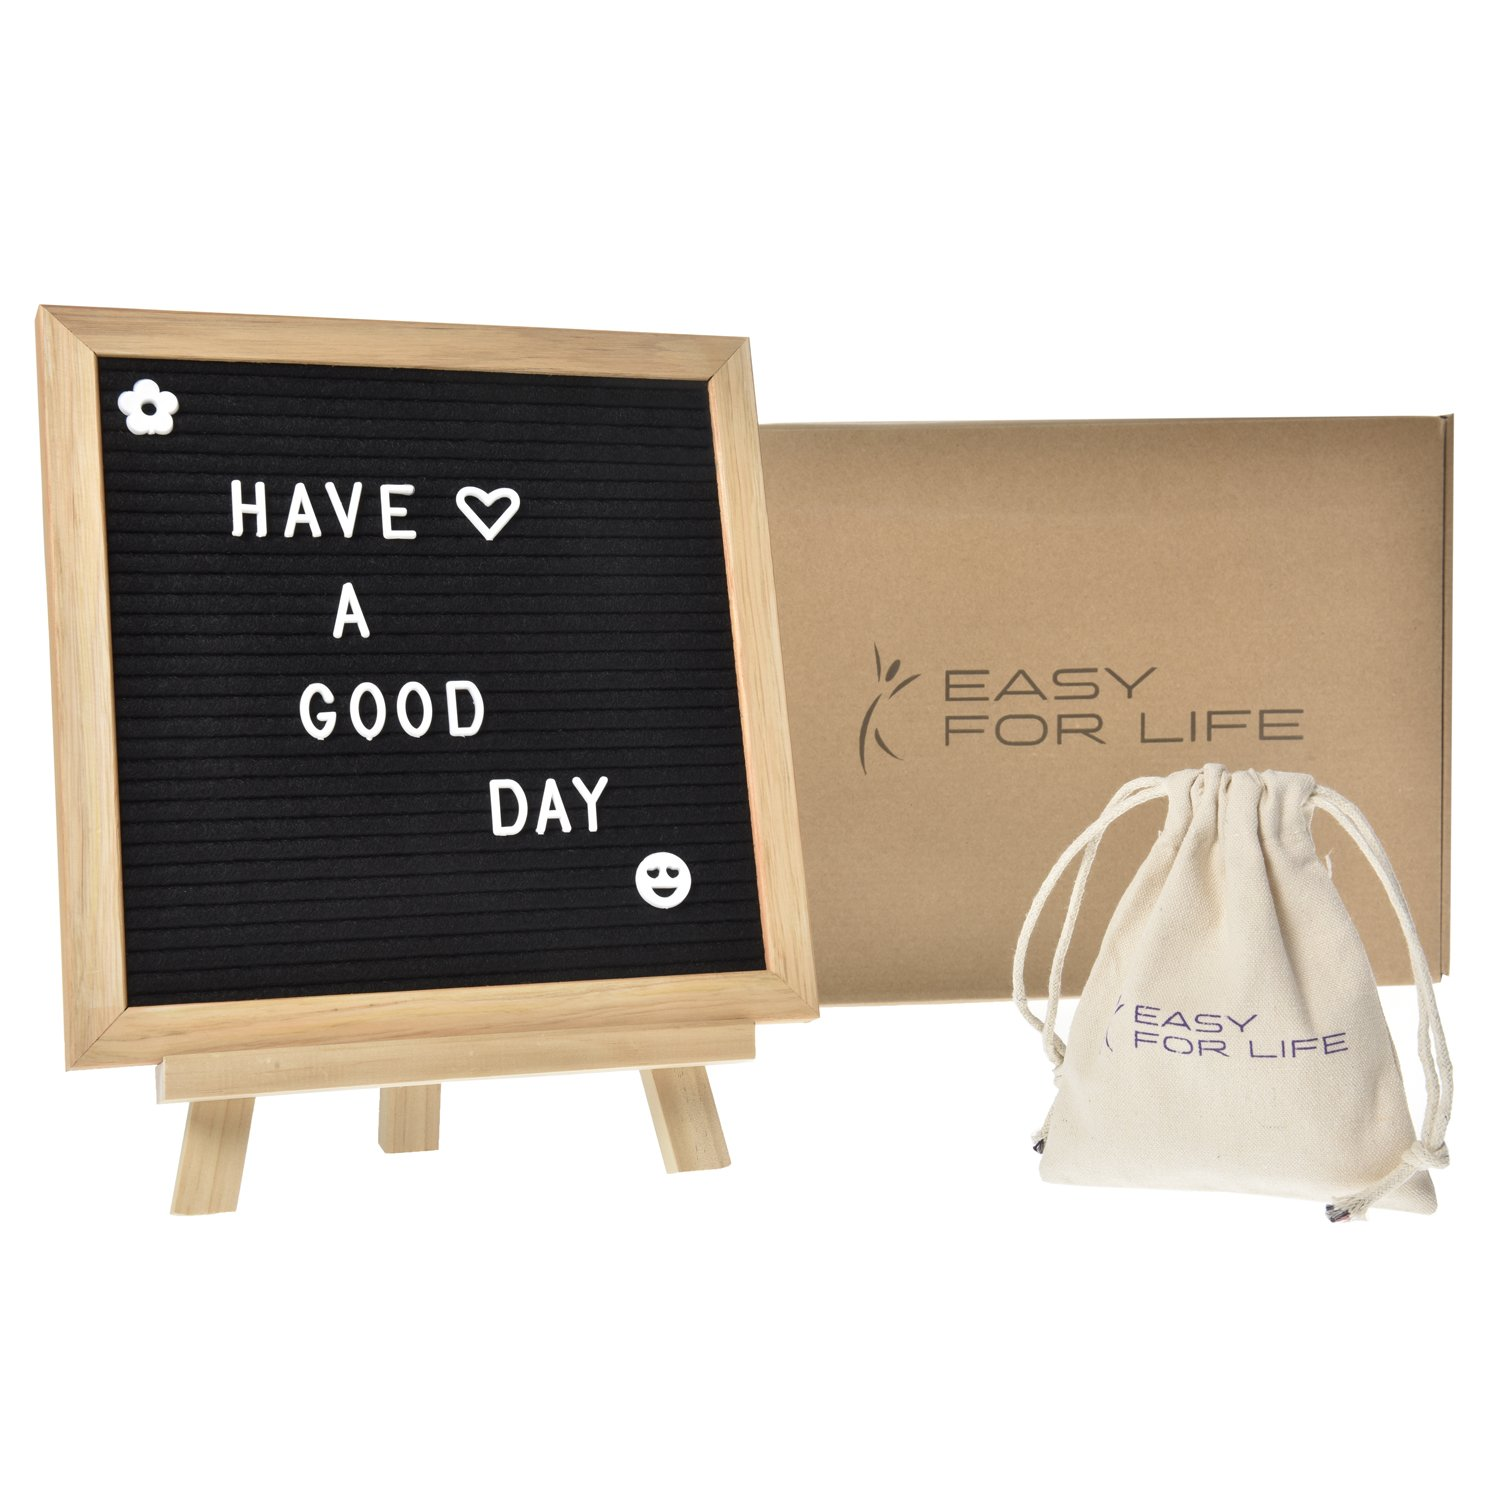 Changeable Felt Letter Board-Top Quality Oak 10x10 Black | Changeable Letter Board | 340 White Letters Including Emoji, Punctuation and Symbols | White Cotton Bag Included to Store Extra Letters